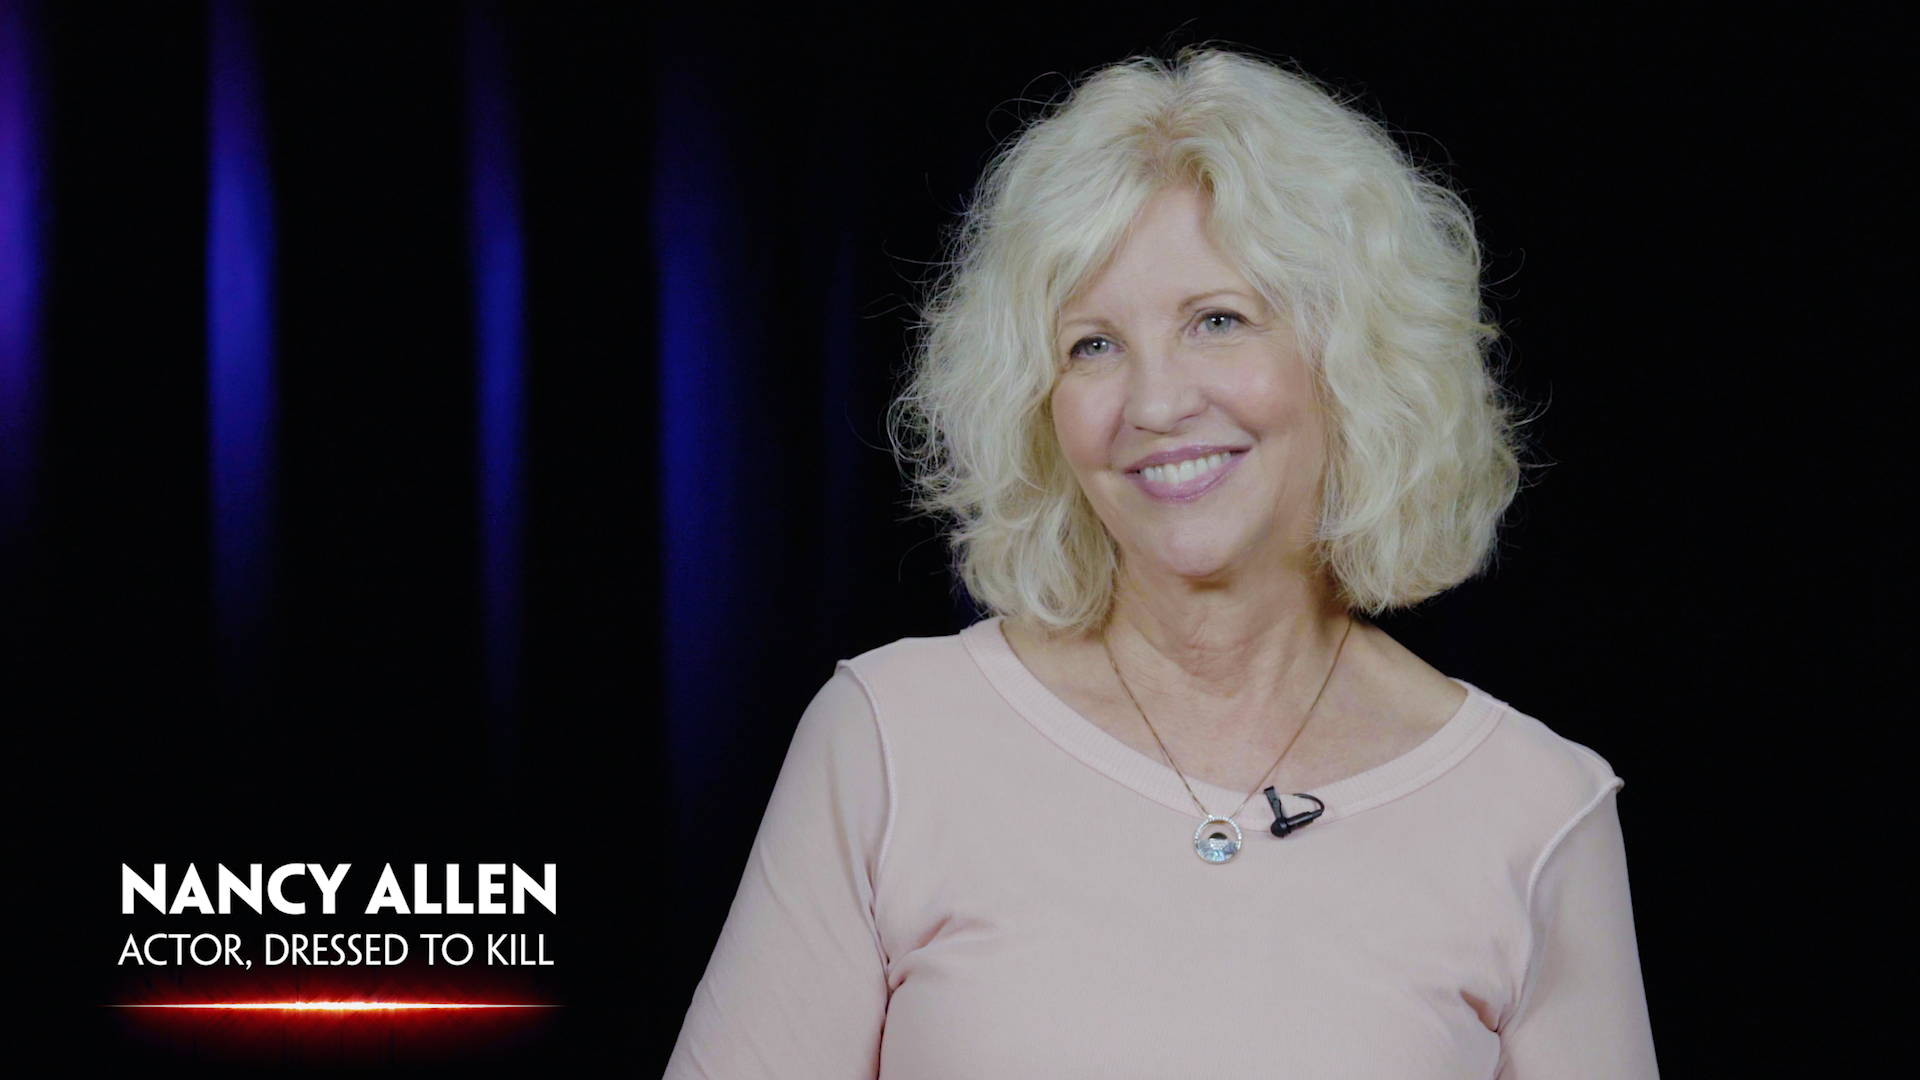 In Search of Darkness Part II: Nancy Allen